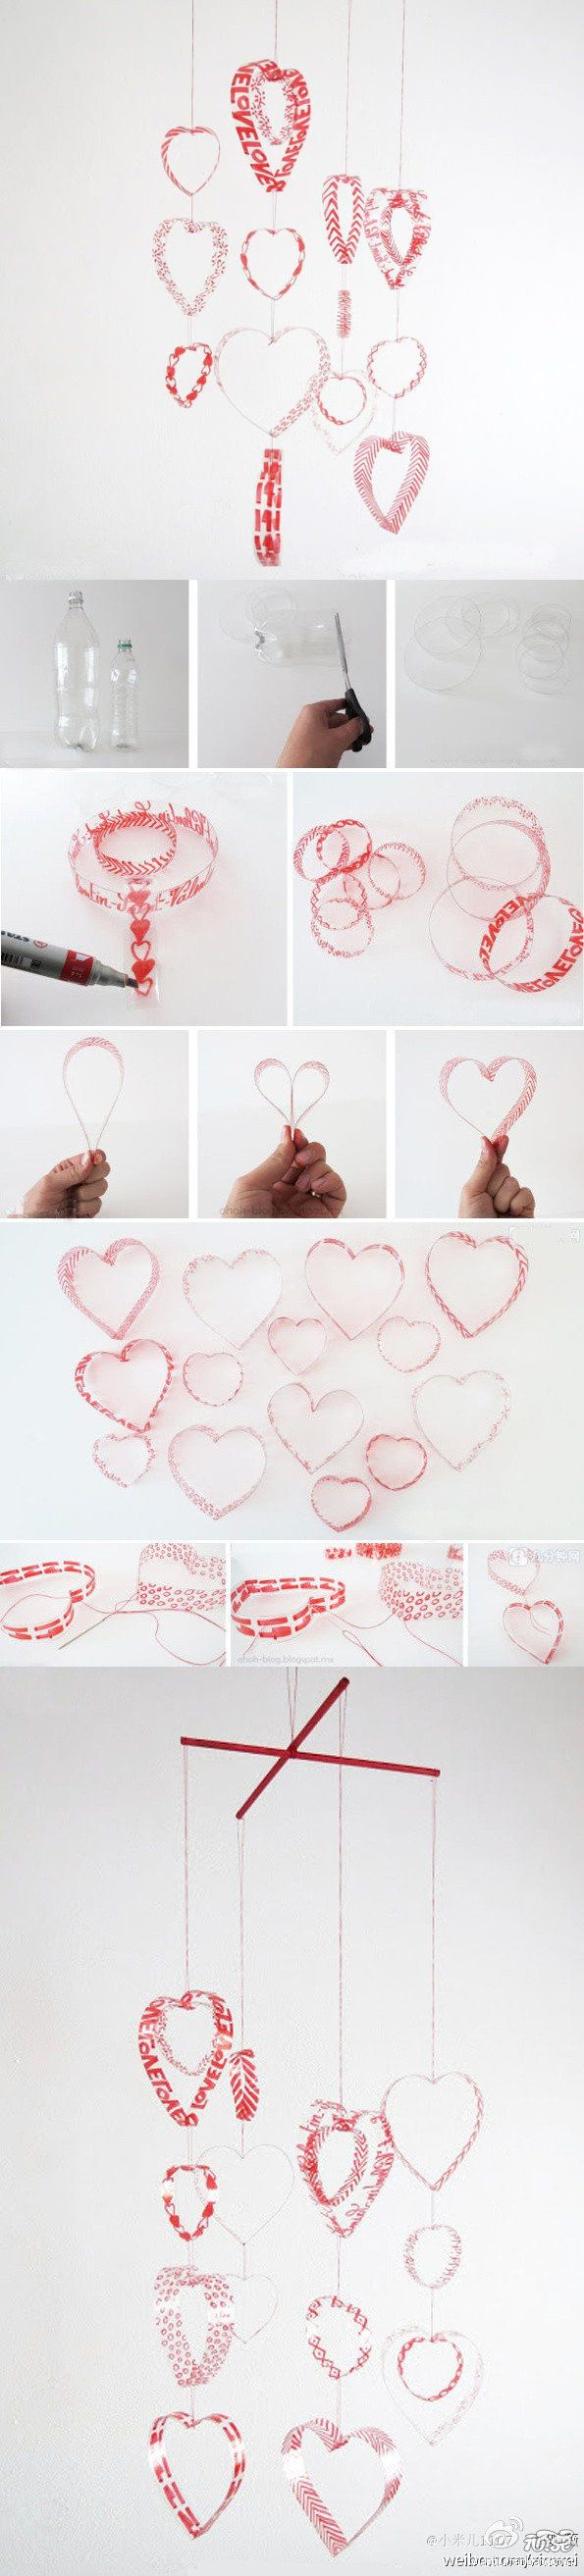 DIY Plastic Bottle Heart Mobile